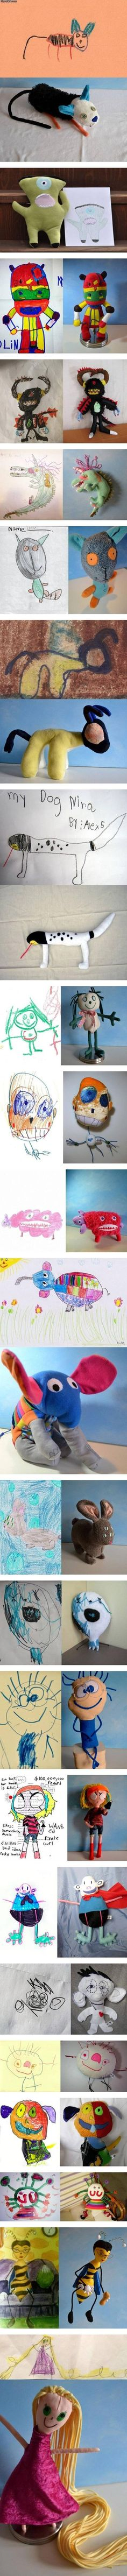 Toy company turning kids drawings into toys - actually an awesome idea!